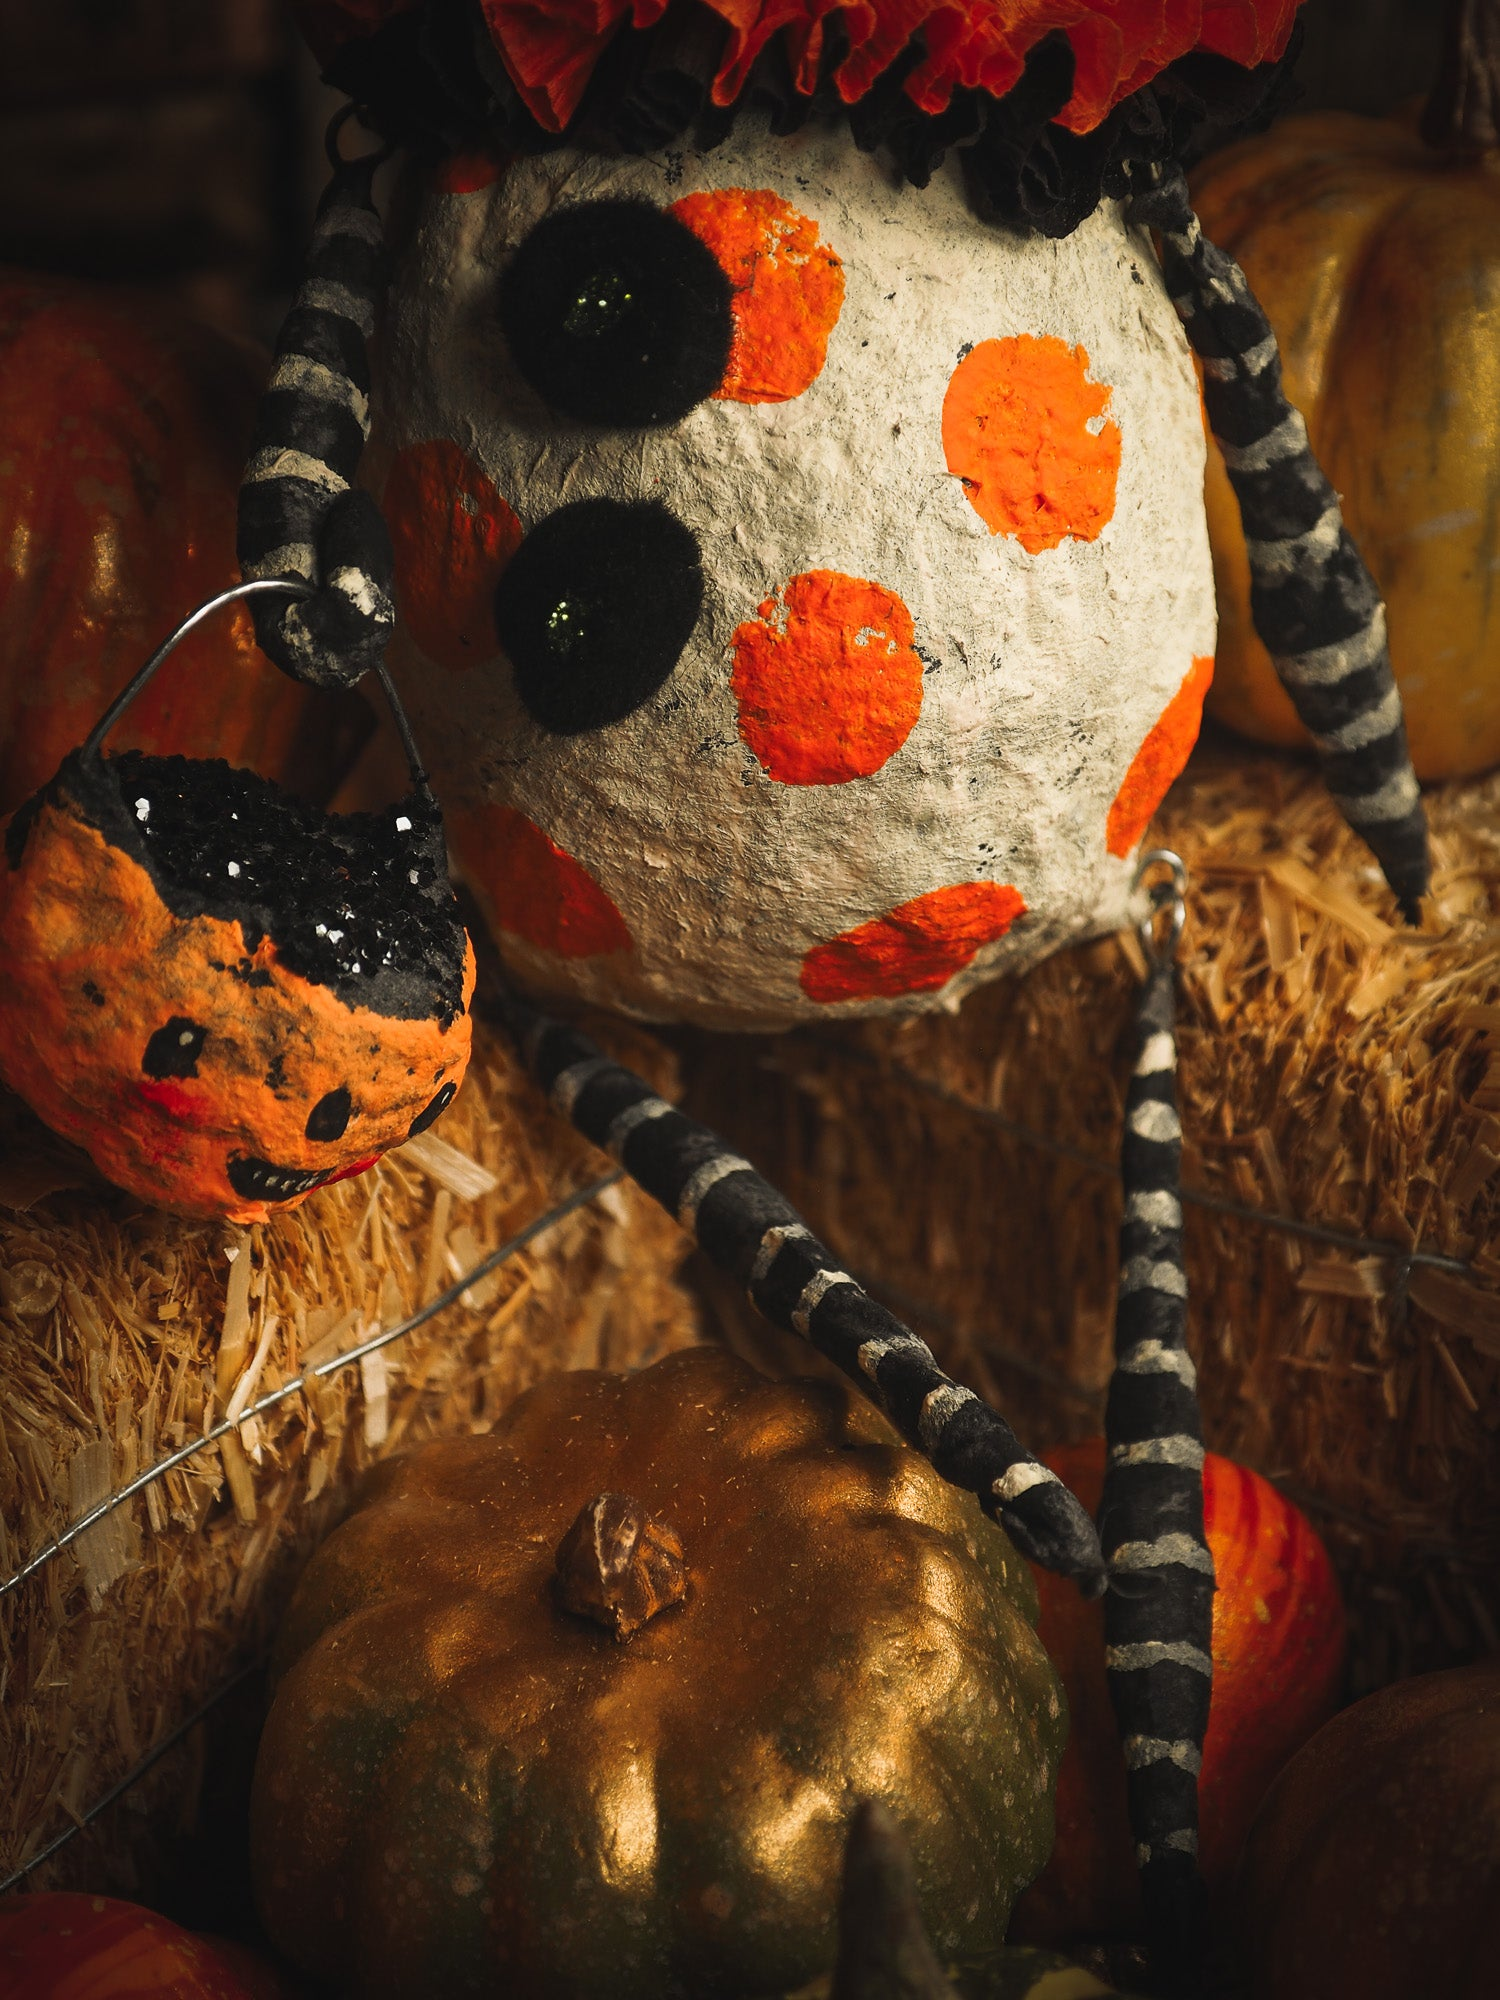 This adorable Halloween handmade ornament pumpkin jack-o-lantern doll monster by Idania Salcido, the artist behind Danita Art, is made with painted spun cotton and paper. It has hand painted face, teeth and eyes with a glittery paper had and matching paper costume. A Halloween home decoration on trick-or-treat night.